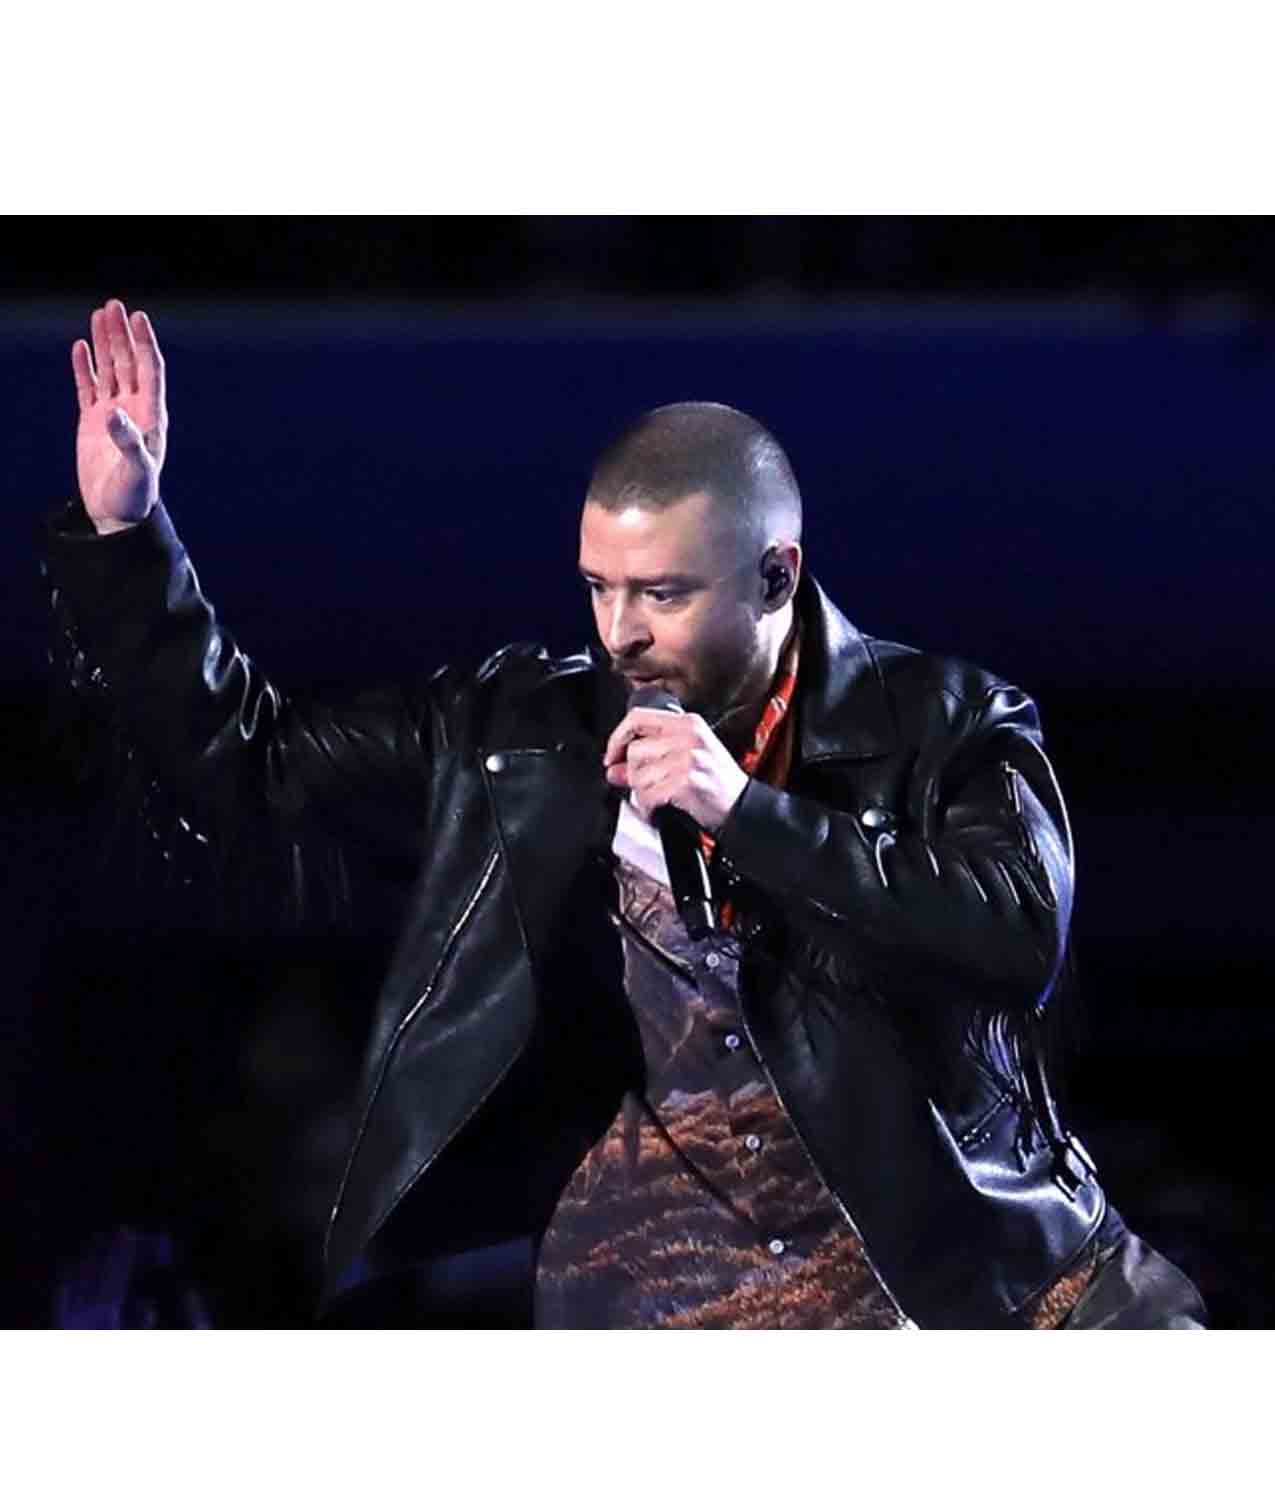 new arrival 6d7d1 fa7cc Super Bowl Lii Halftime Justin Timberlake Leather Jacket ...